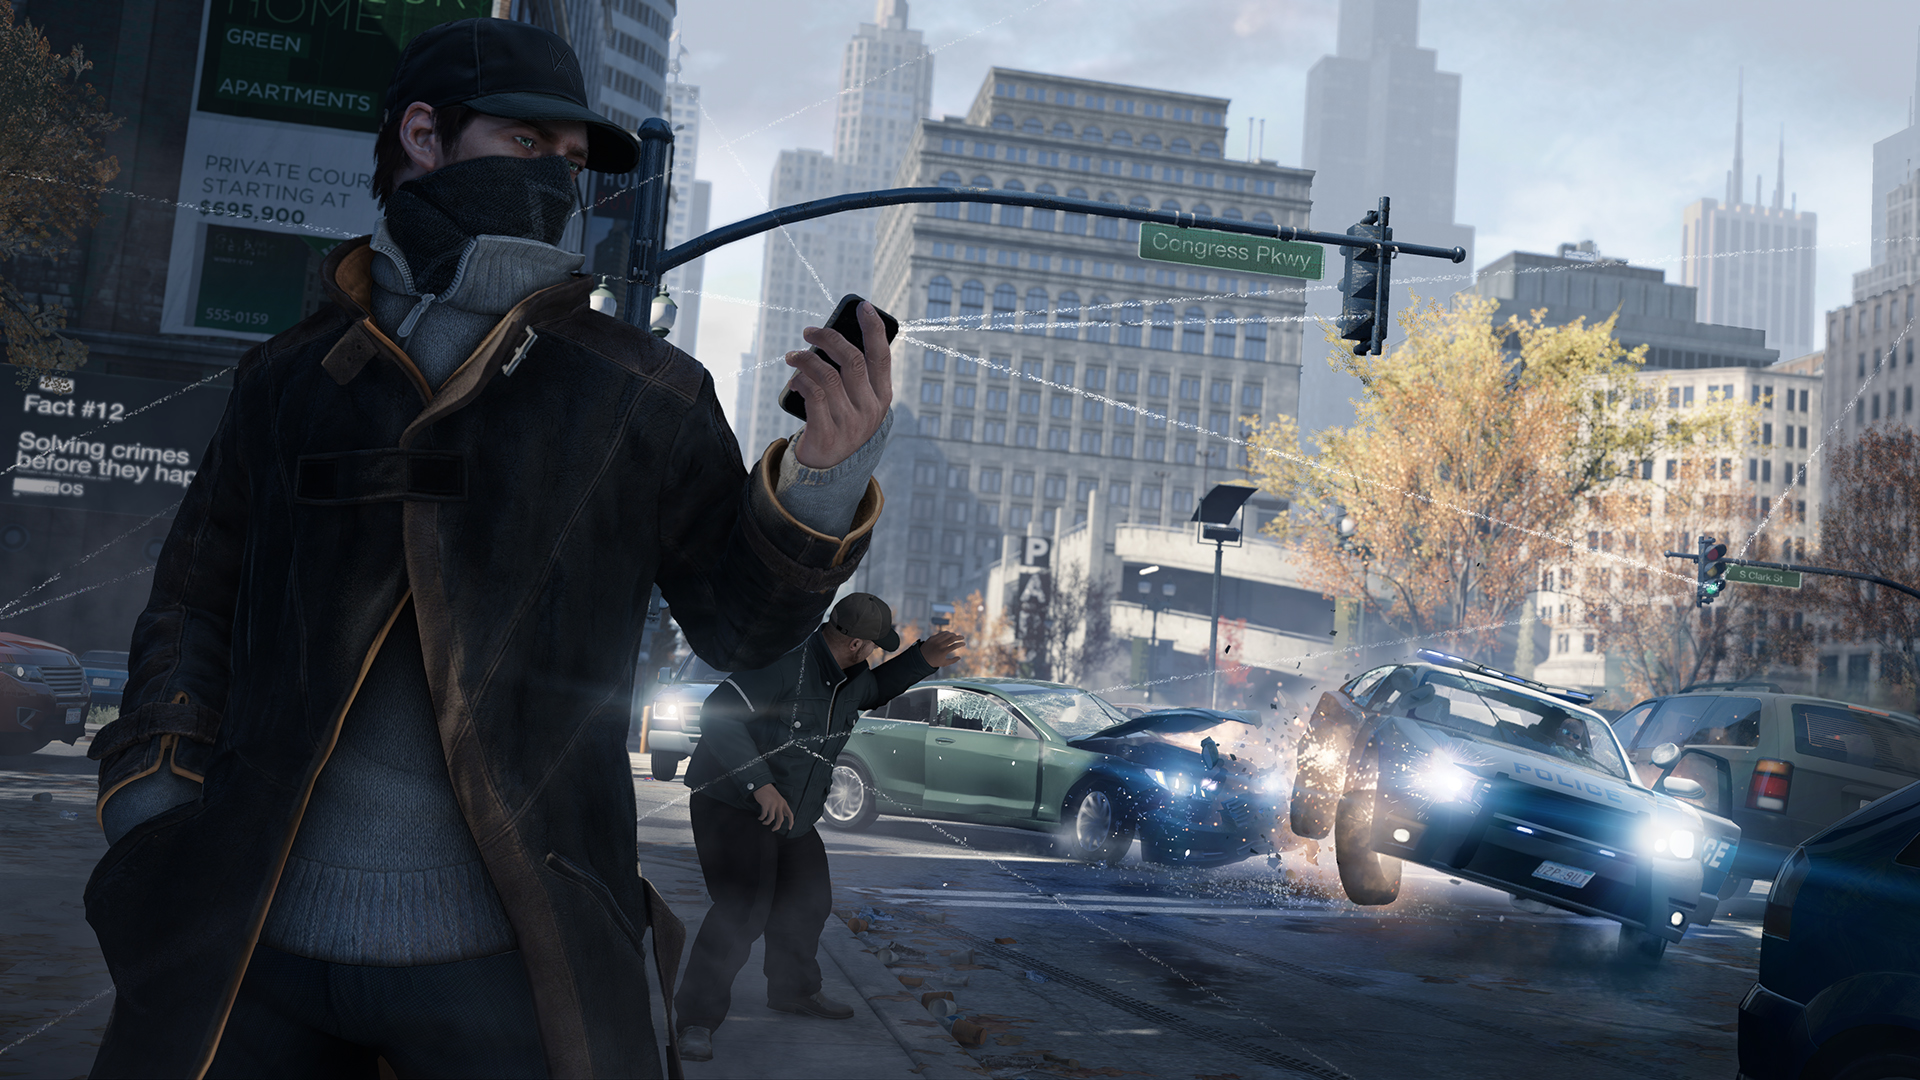 watch-dogs-police-block-trafficlight